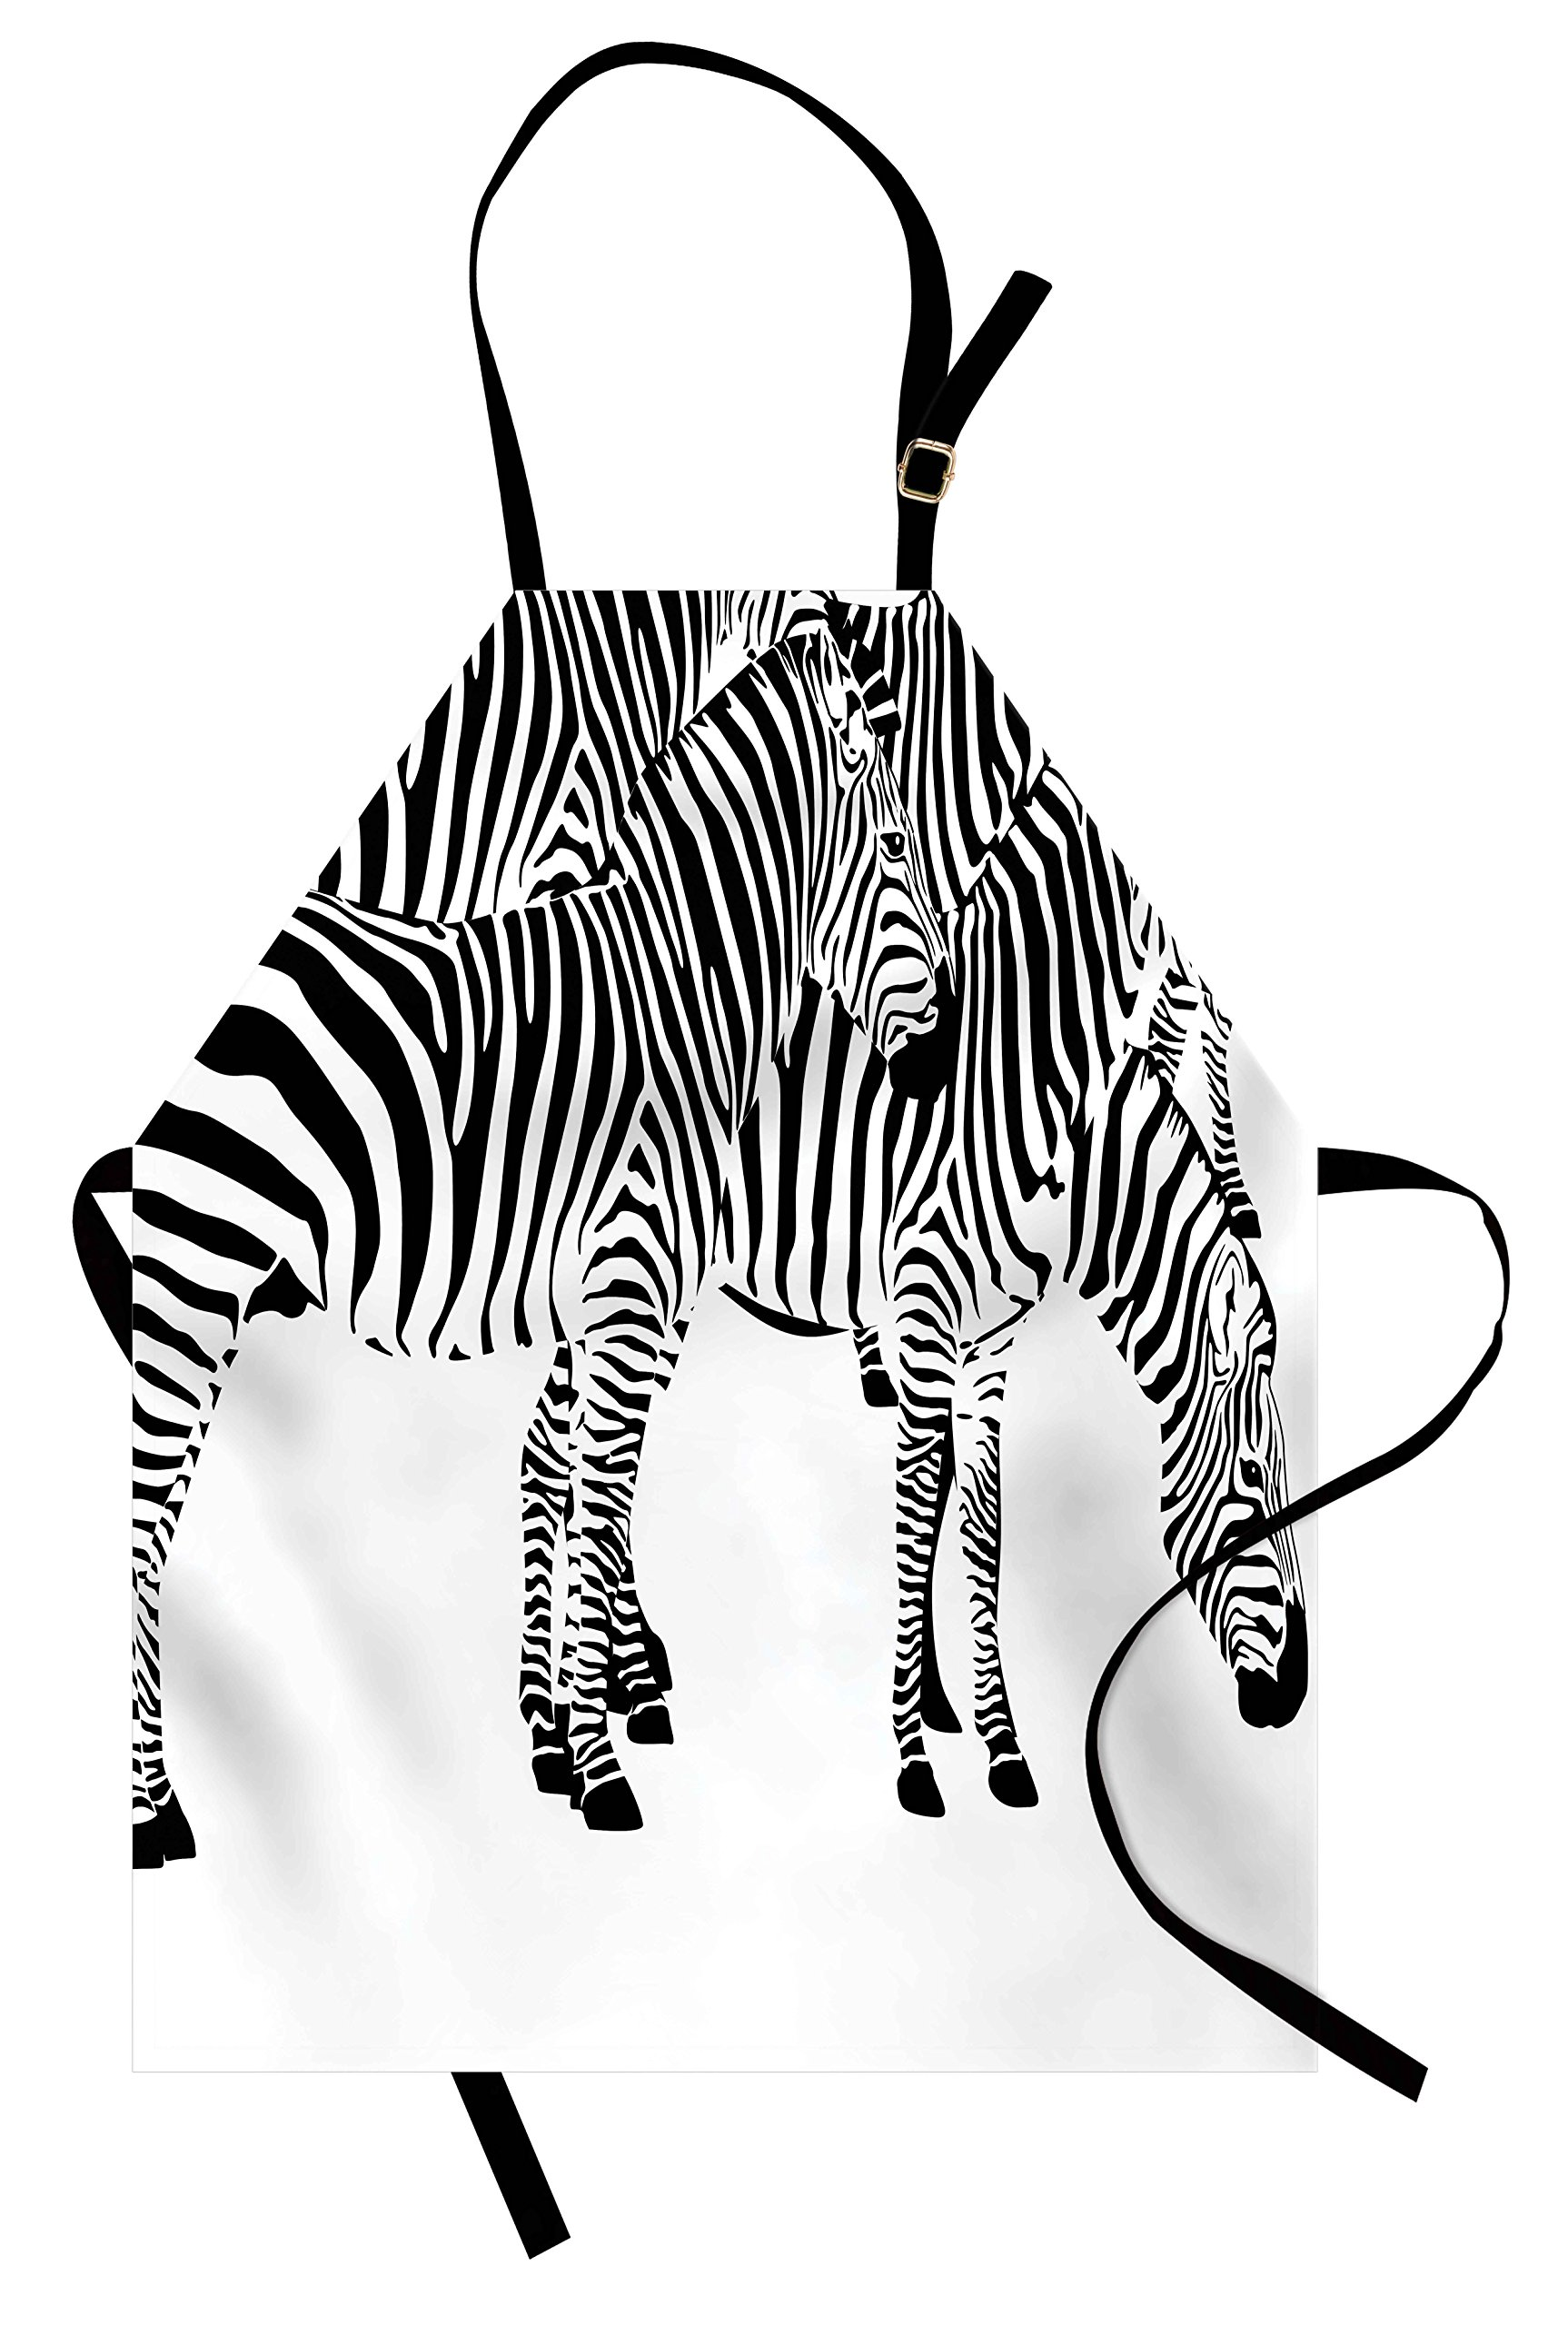 Ambesonne Safari Apron, Zebras African Animals Skin Print with Stripes Jungle Wildlife Picture Artwork, Unisex Kitchen Bib Apron with Adjustable Neck for Cooking Baking Gardening, Black and White